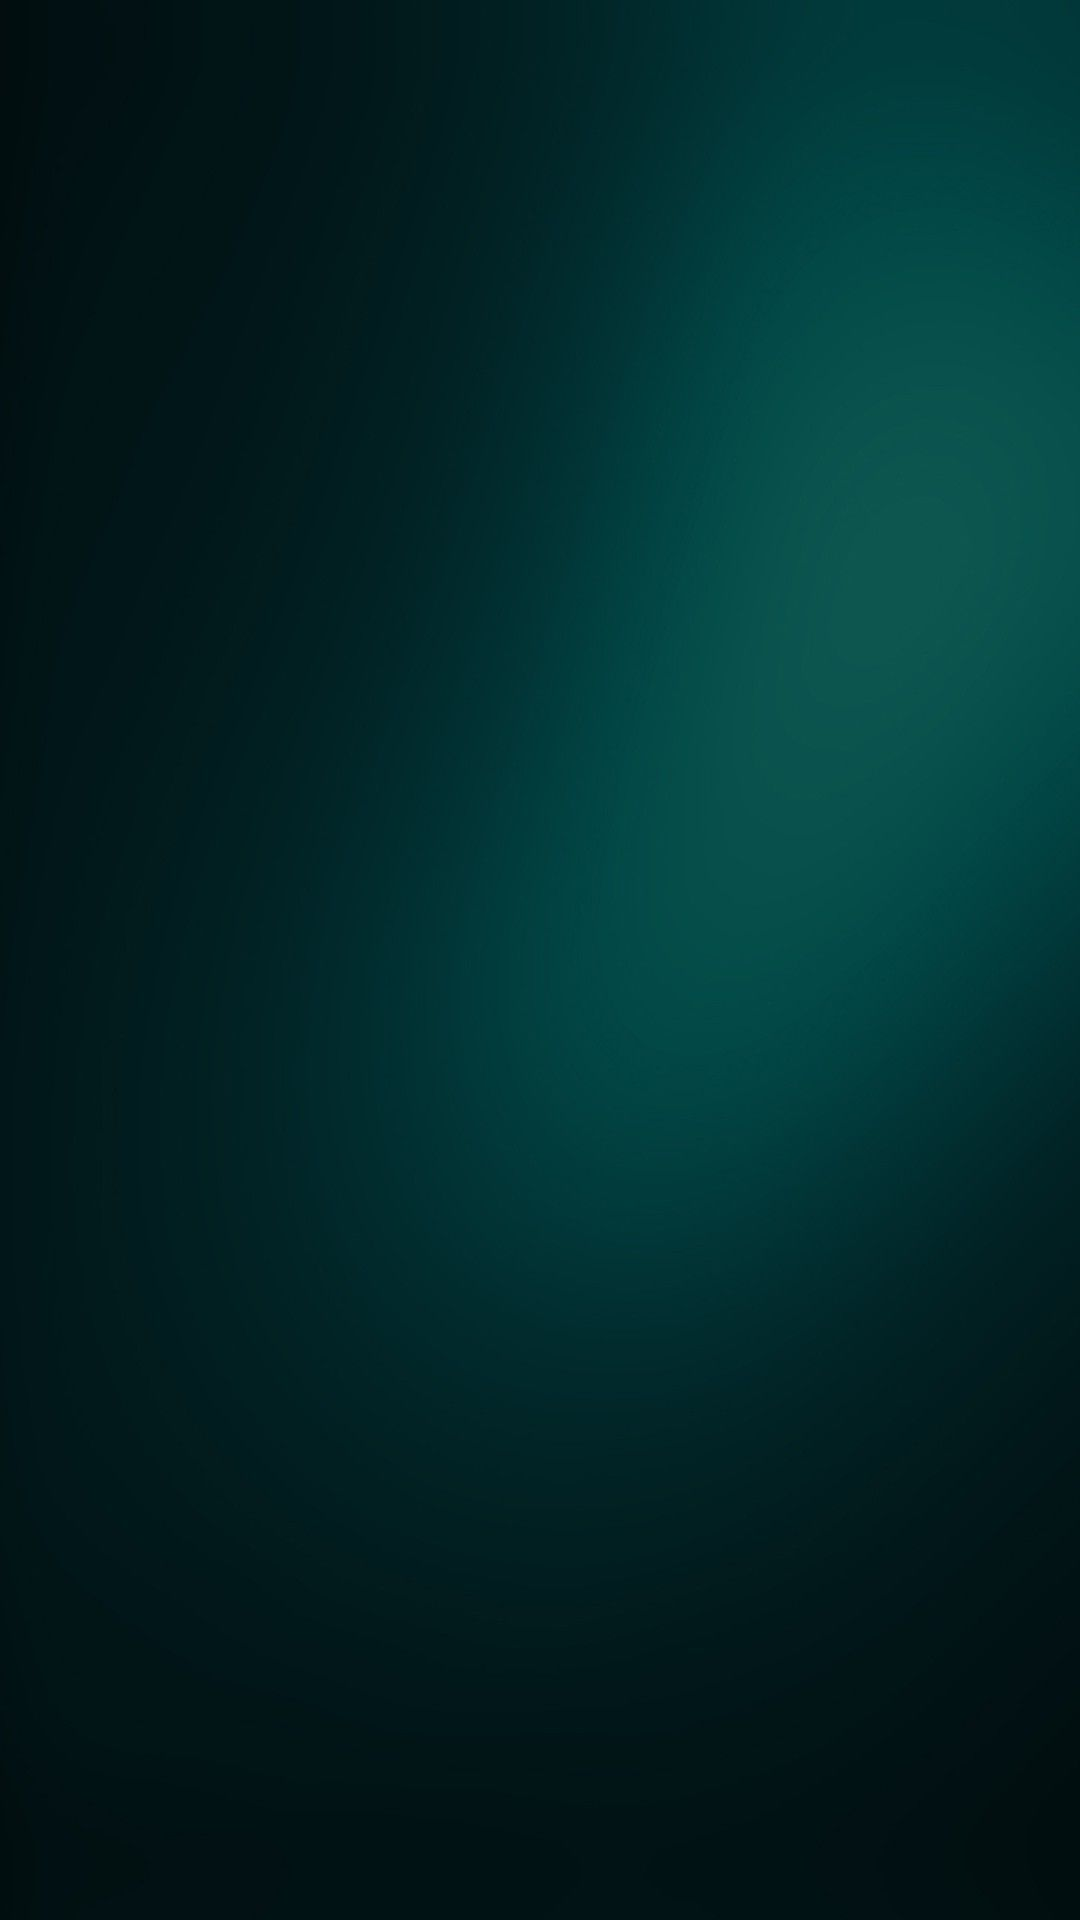 Dark Green Iphone Wallpapers